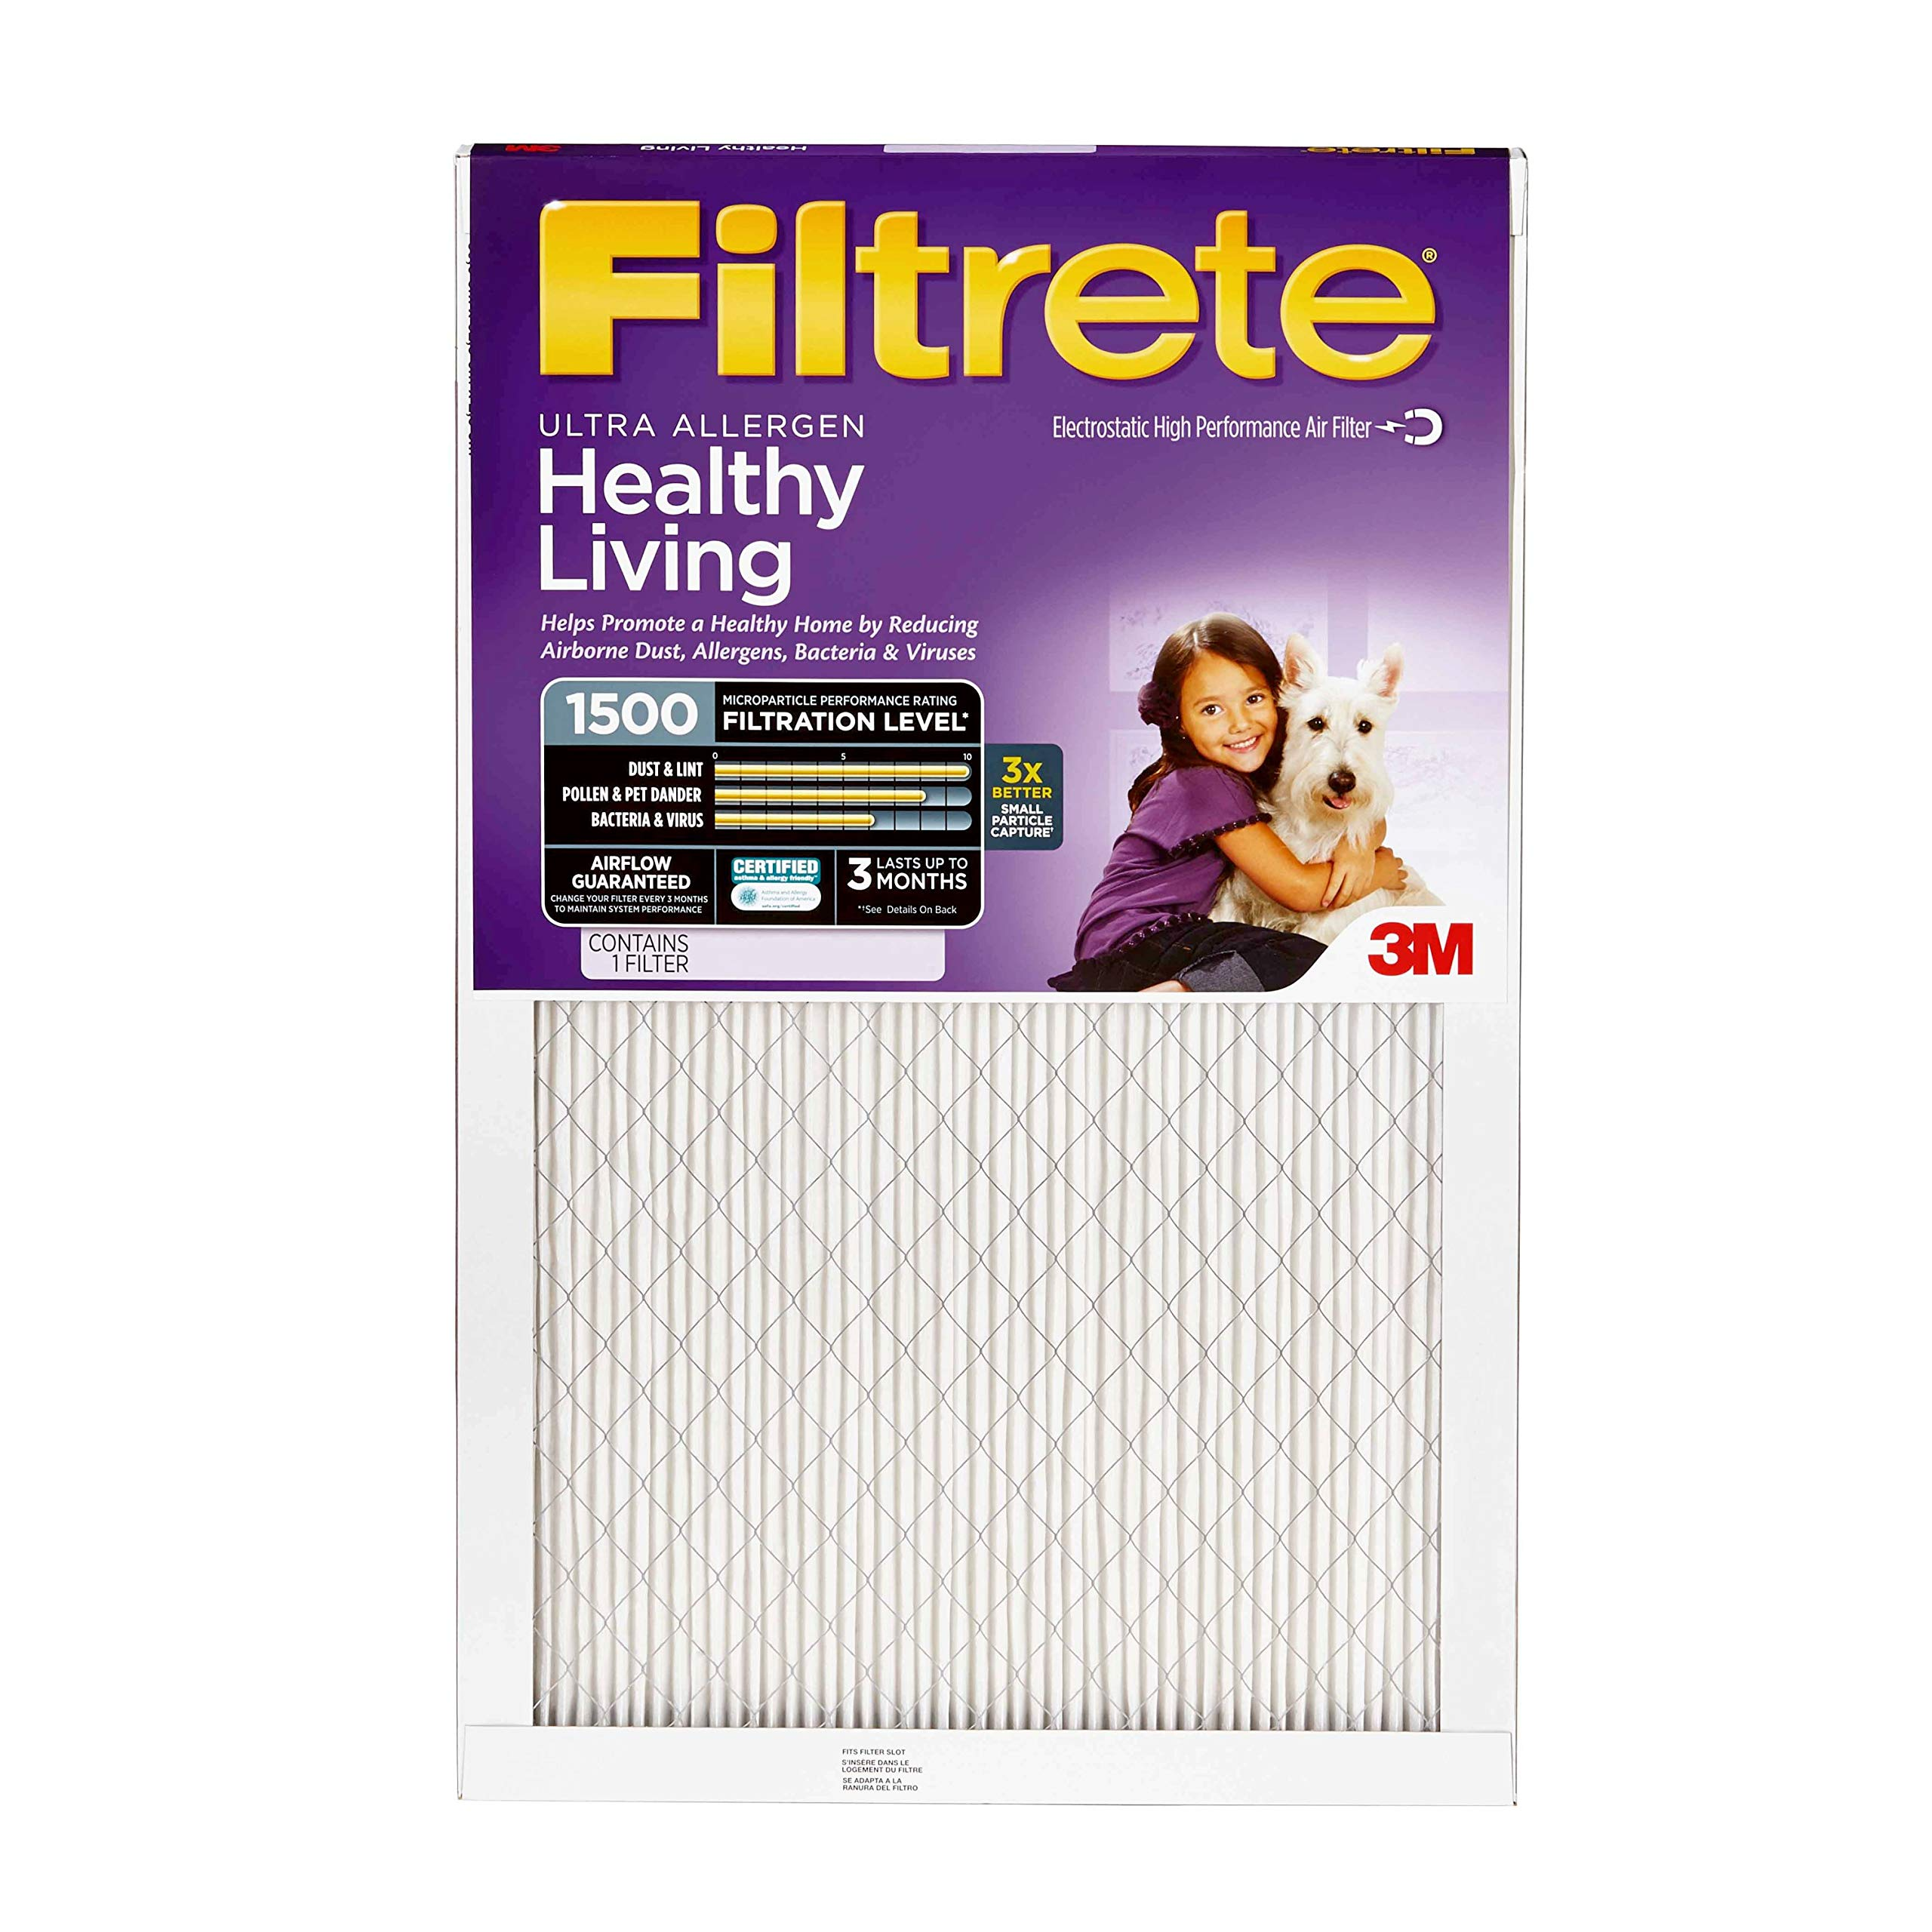 Filtrete 16x20x1, AC Furnace Air Filter, MPR 1500, Healthy Living Ultra Allergen, 4-Pack by Filtrete